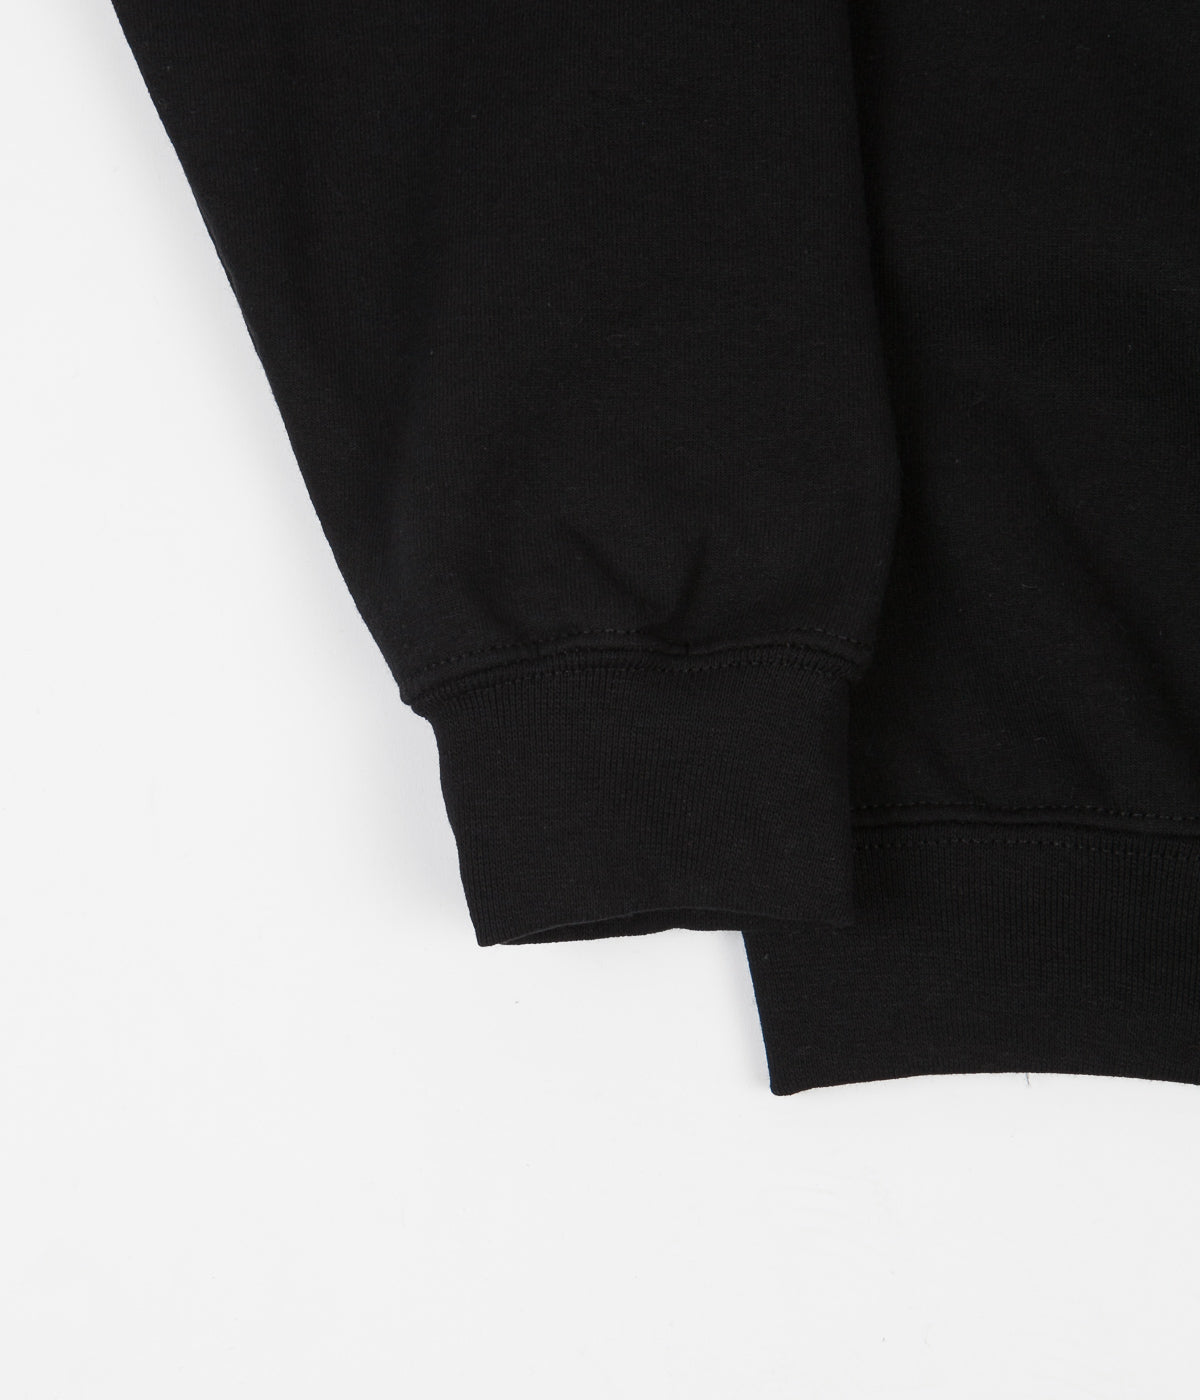 The Quiet Life Paris Crewneck Sweatshirt - Black